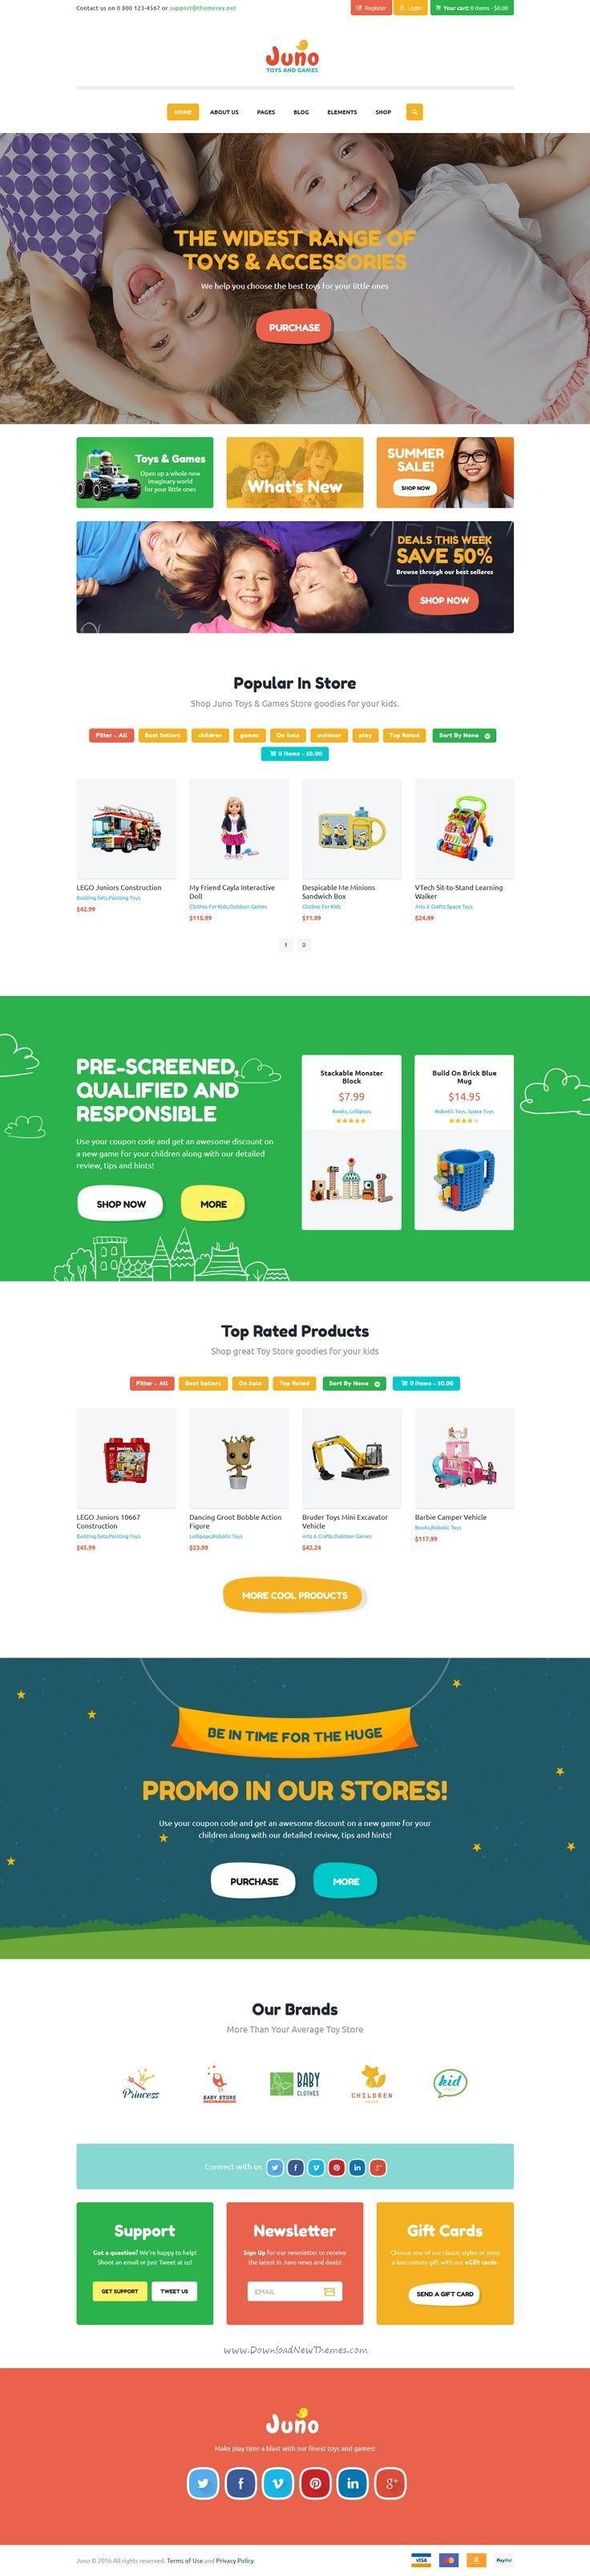 Juno is a cute and colorful premium #WooCommerce @WordPress theme for stunning #kids toys, clothes #eCommerce website download now➯ https://themeforest.net/item/juno-kids-toys-games-store/17354674?ref=Datasata - Love a good success story? Learn how I went from zero to 1 million in sales in 5 months with an e-commerce store.